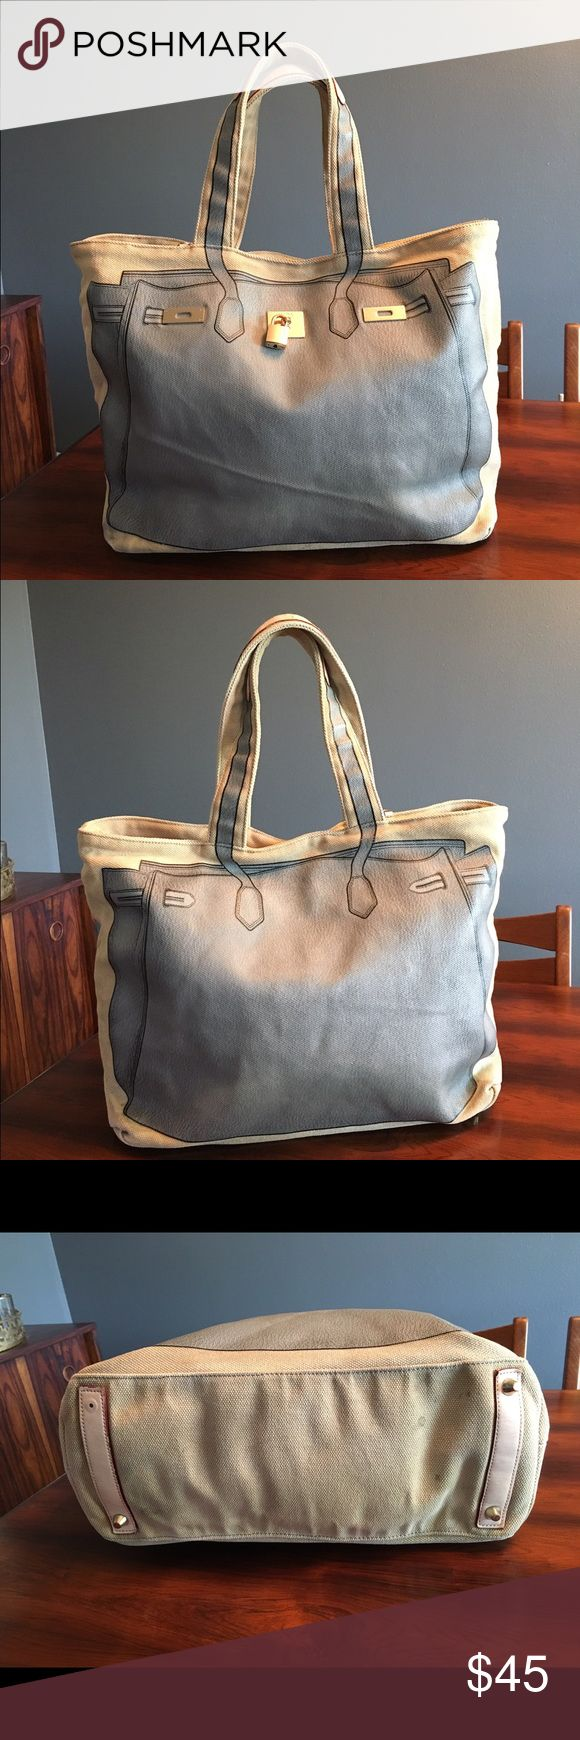 "V73 Canvas Tote Bag Grey designer style V 73 A fun canvas tote by V73. This bag has a picture of a Birkin bag on the front. Great for everyday, travel, or a beach bag. The bag looks pretty good when being carried but when examined it is quite used with spots on the bottom and wear discoloration to the corners, and one of the ""feet"" is missing. The interior is ok with a few pen marks and spots. 13"" tall 19"" wide 7"" deep. Sorry NO TRADES. V73 Bags Totes"